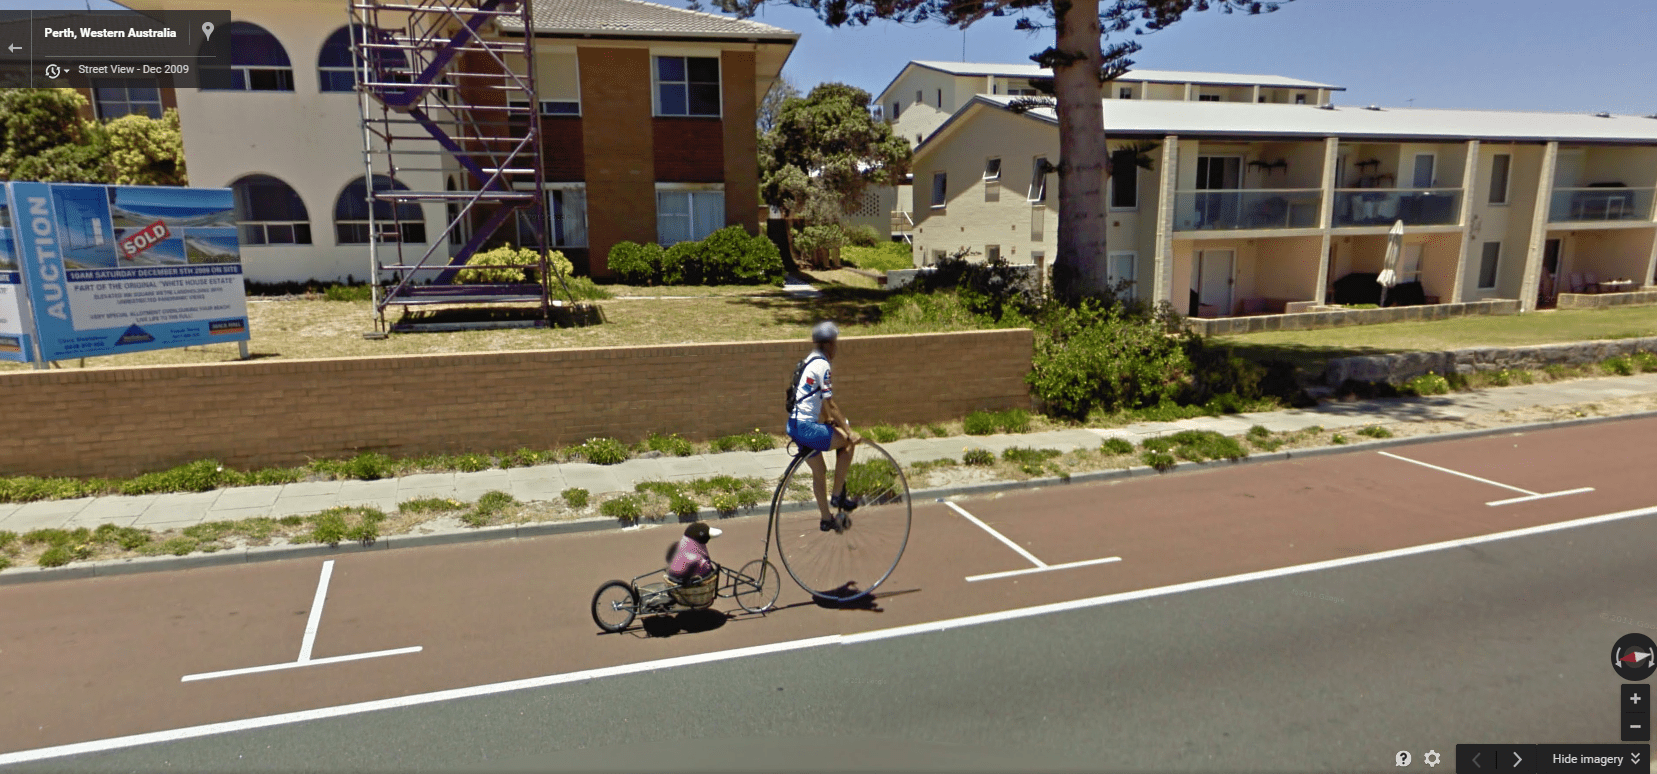 Browse Through This Entertaining Collection Of Street View